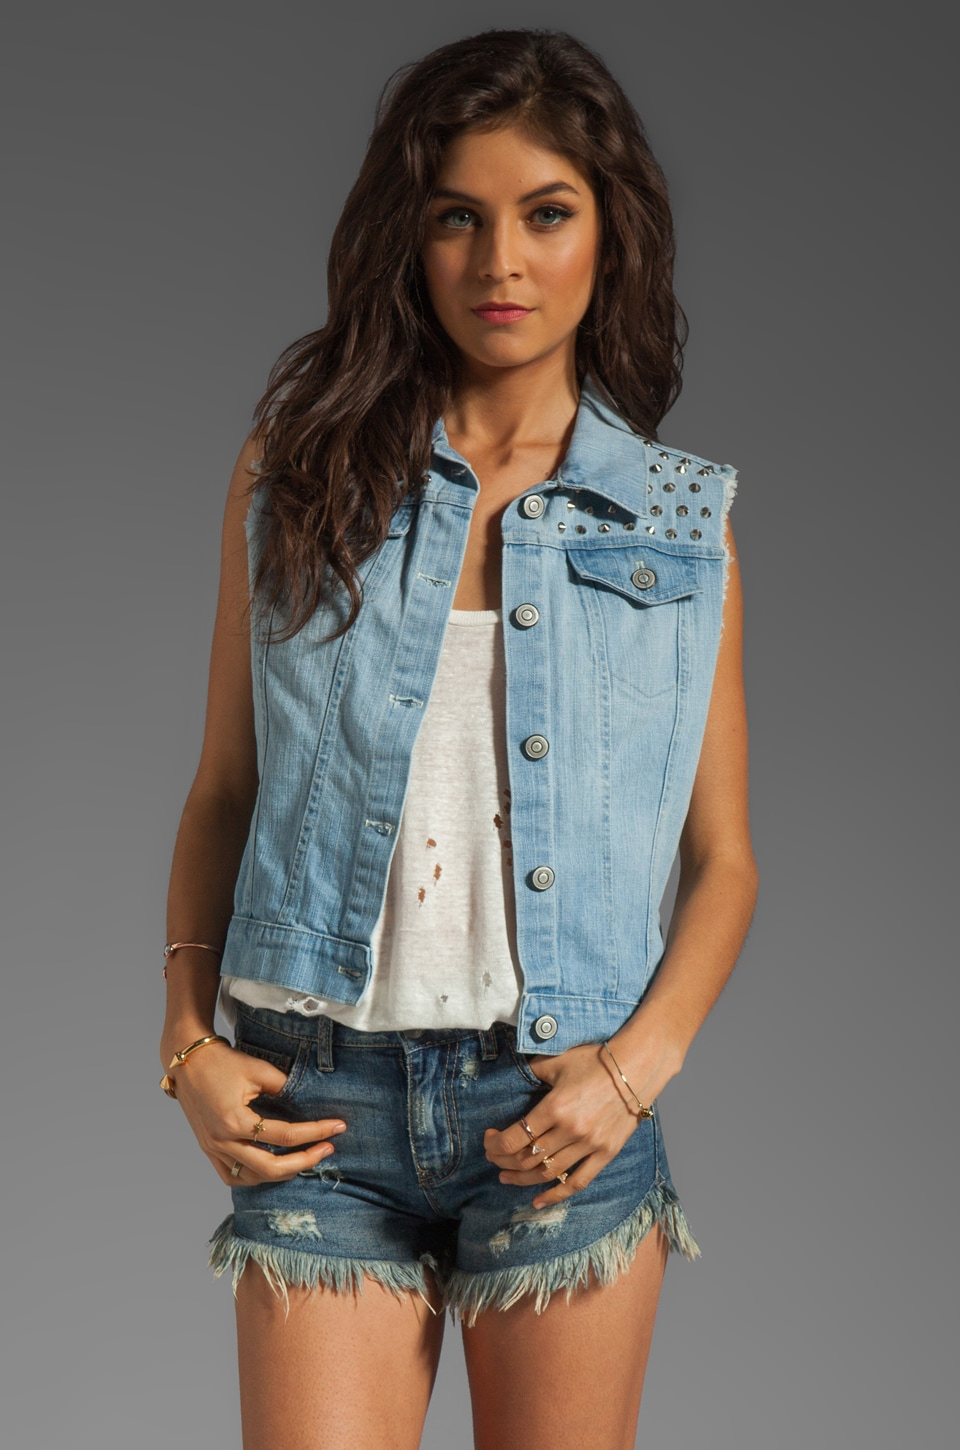 Rails Diego Denim Vest in Vintage Wash with Studs